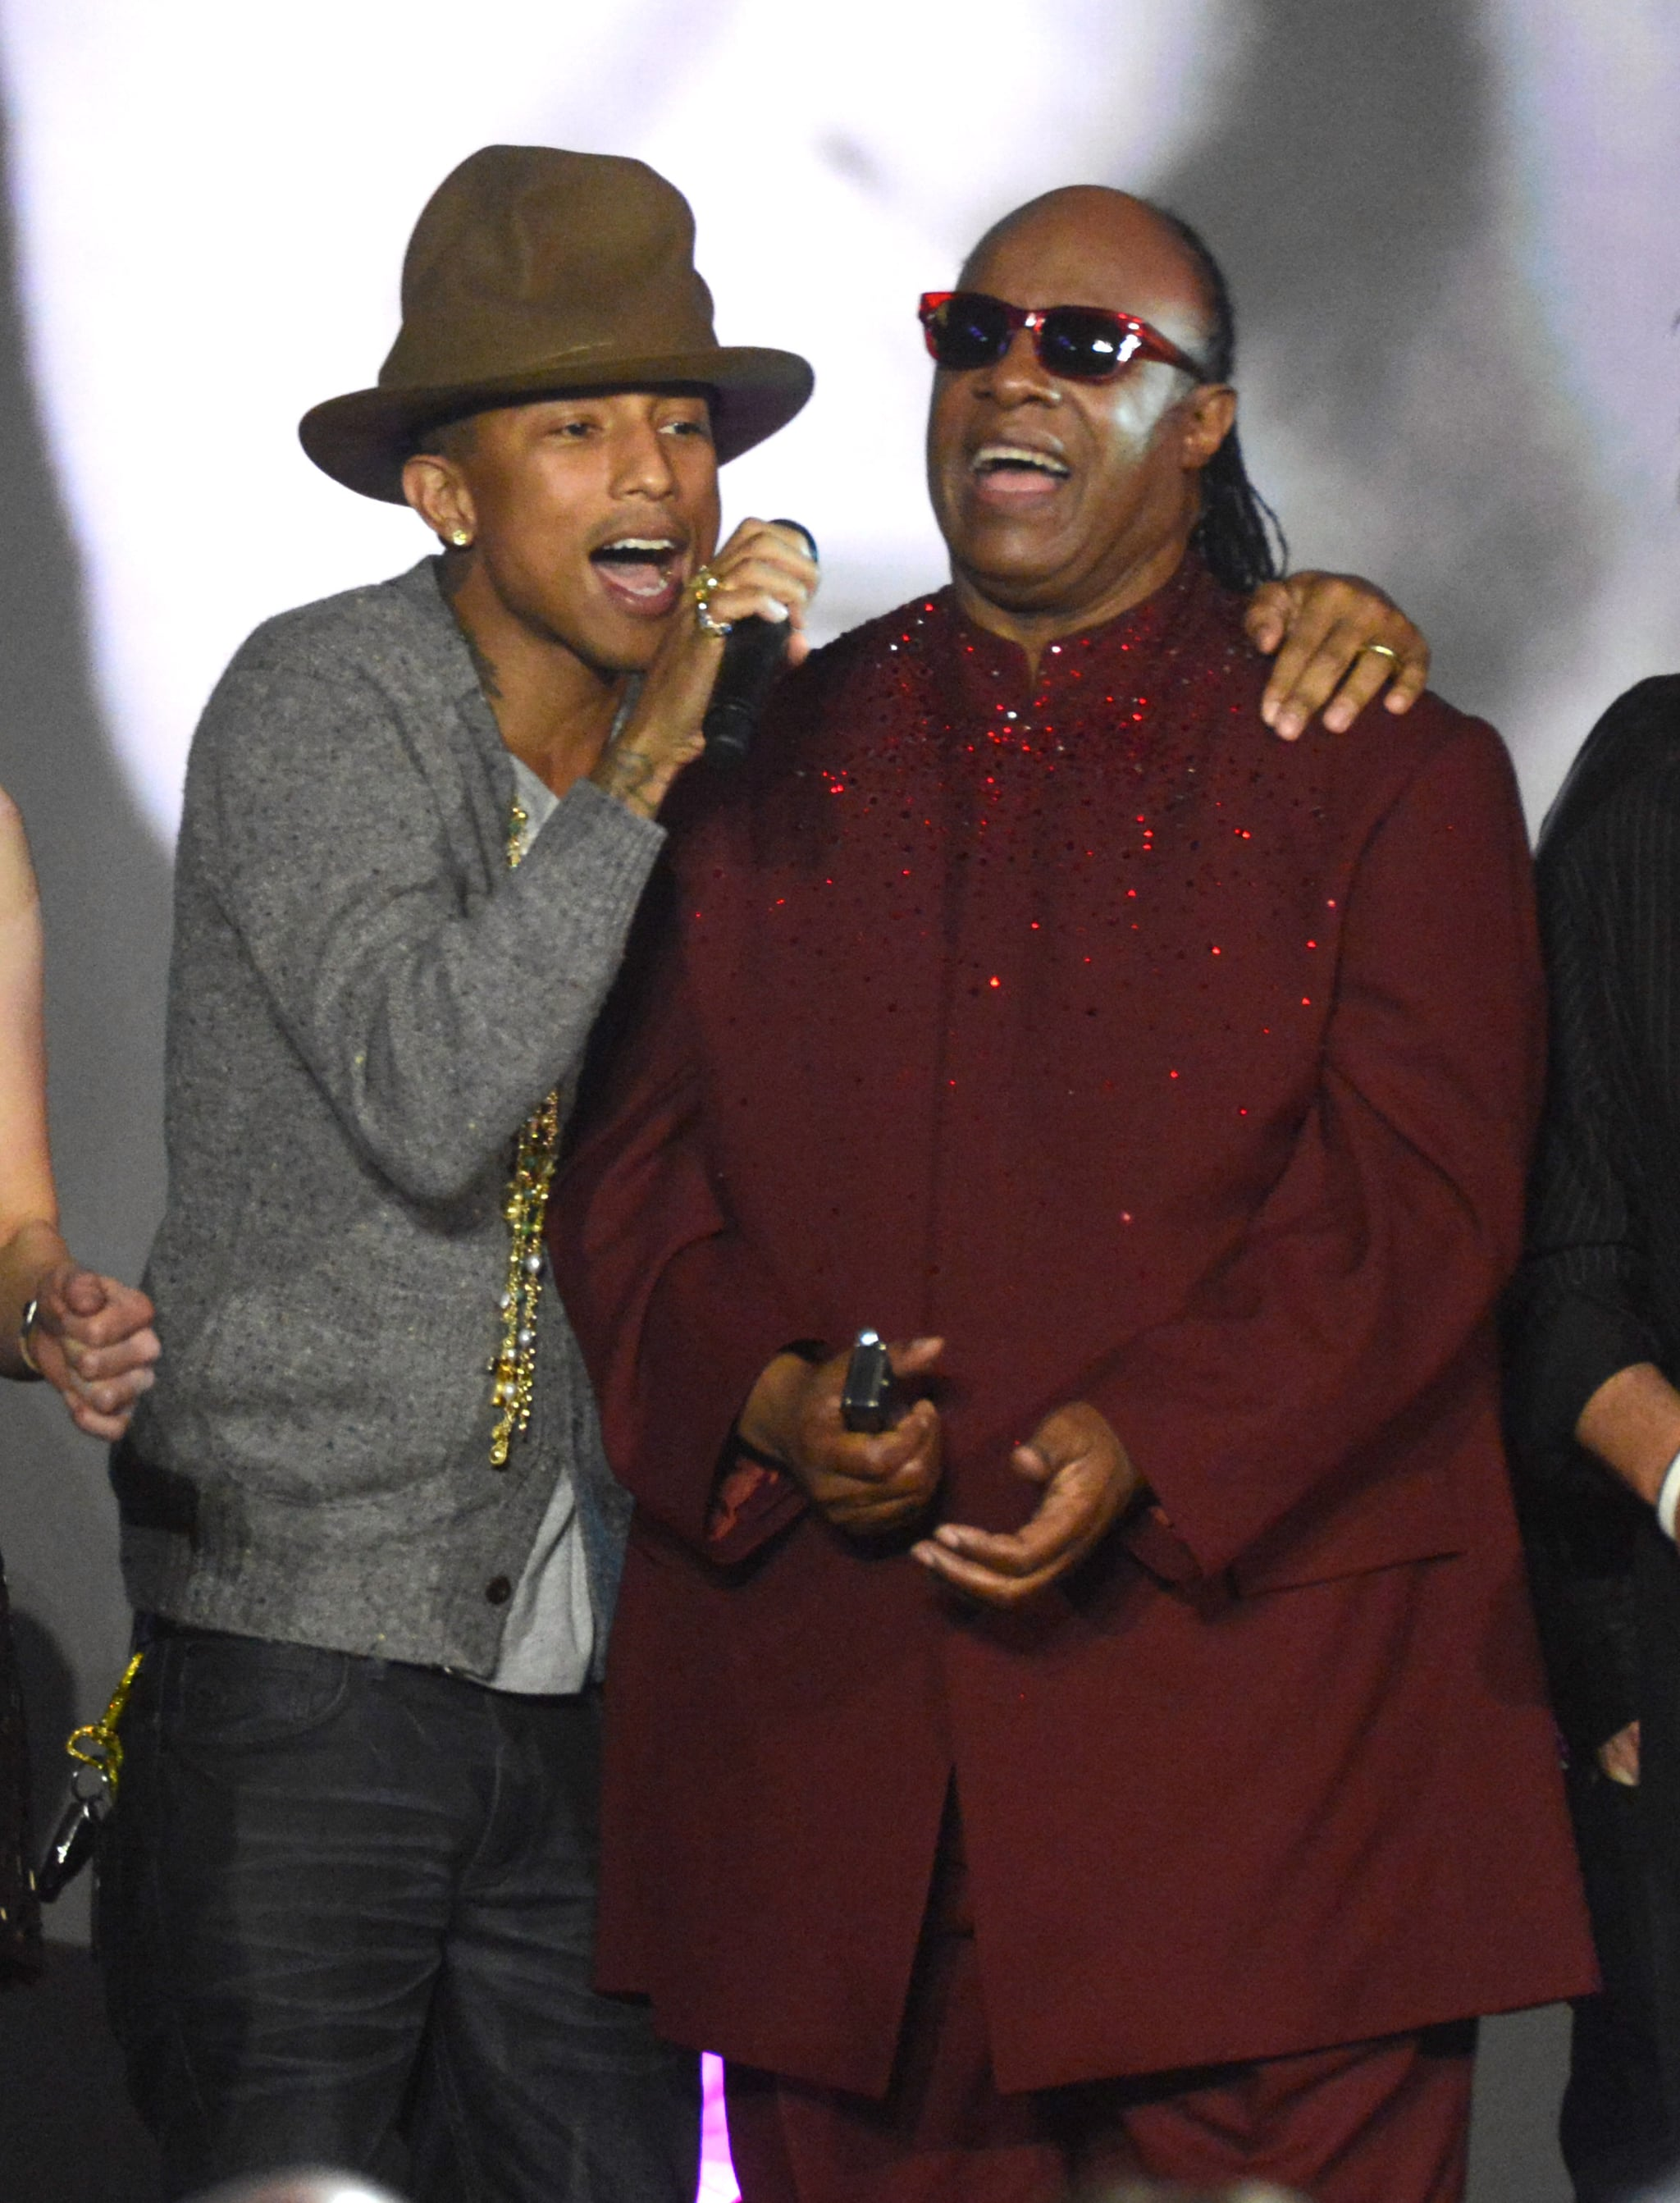 The hat brought down the house with Pharrell and Stevie Wonder during a Grammys salute to The Beatles.